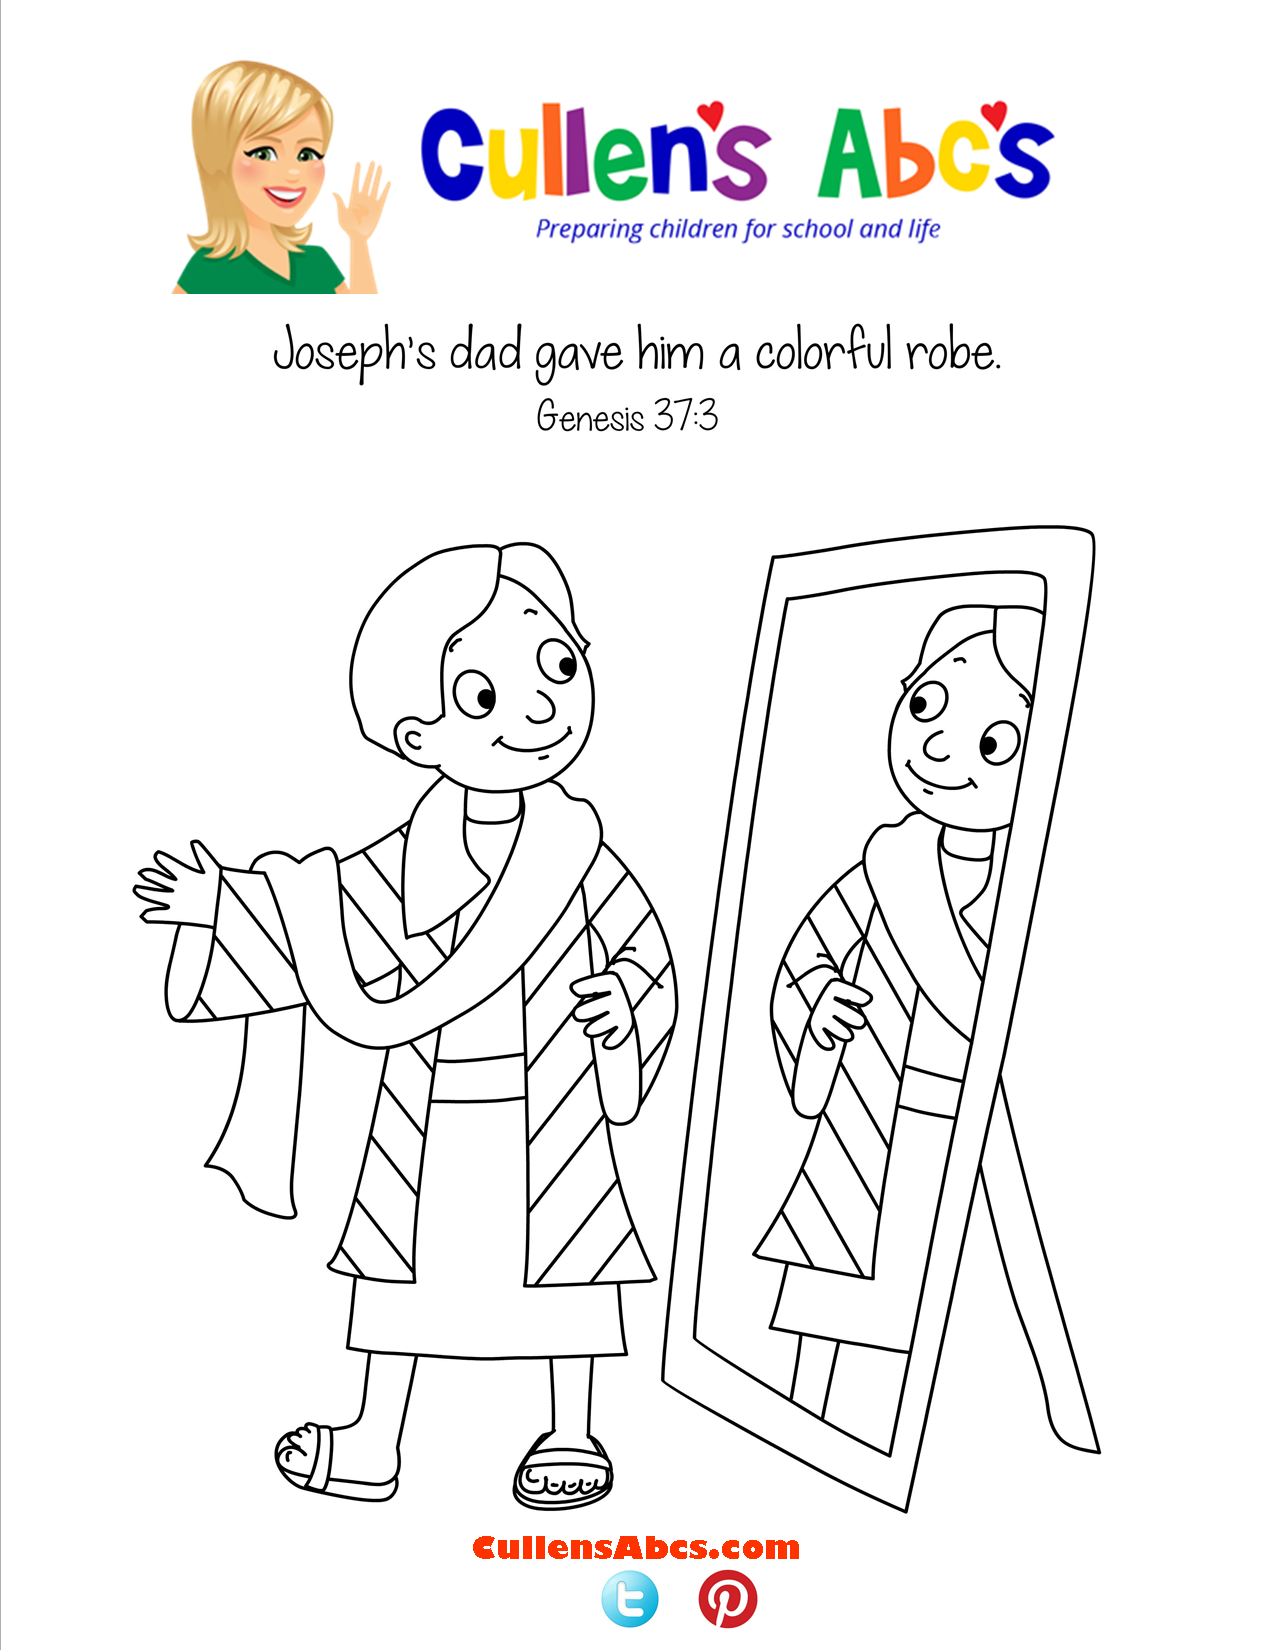 Bible Memory Verse Coloring Page Joseph's Colorful Robe